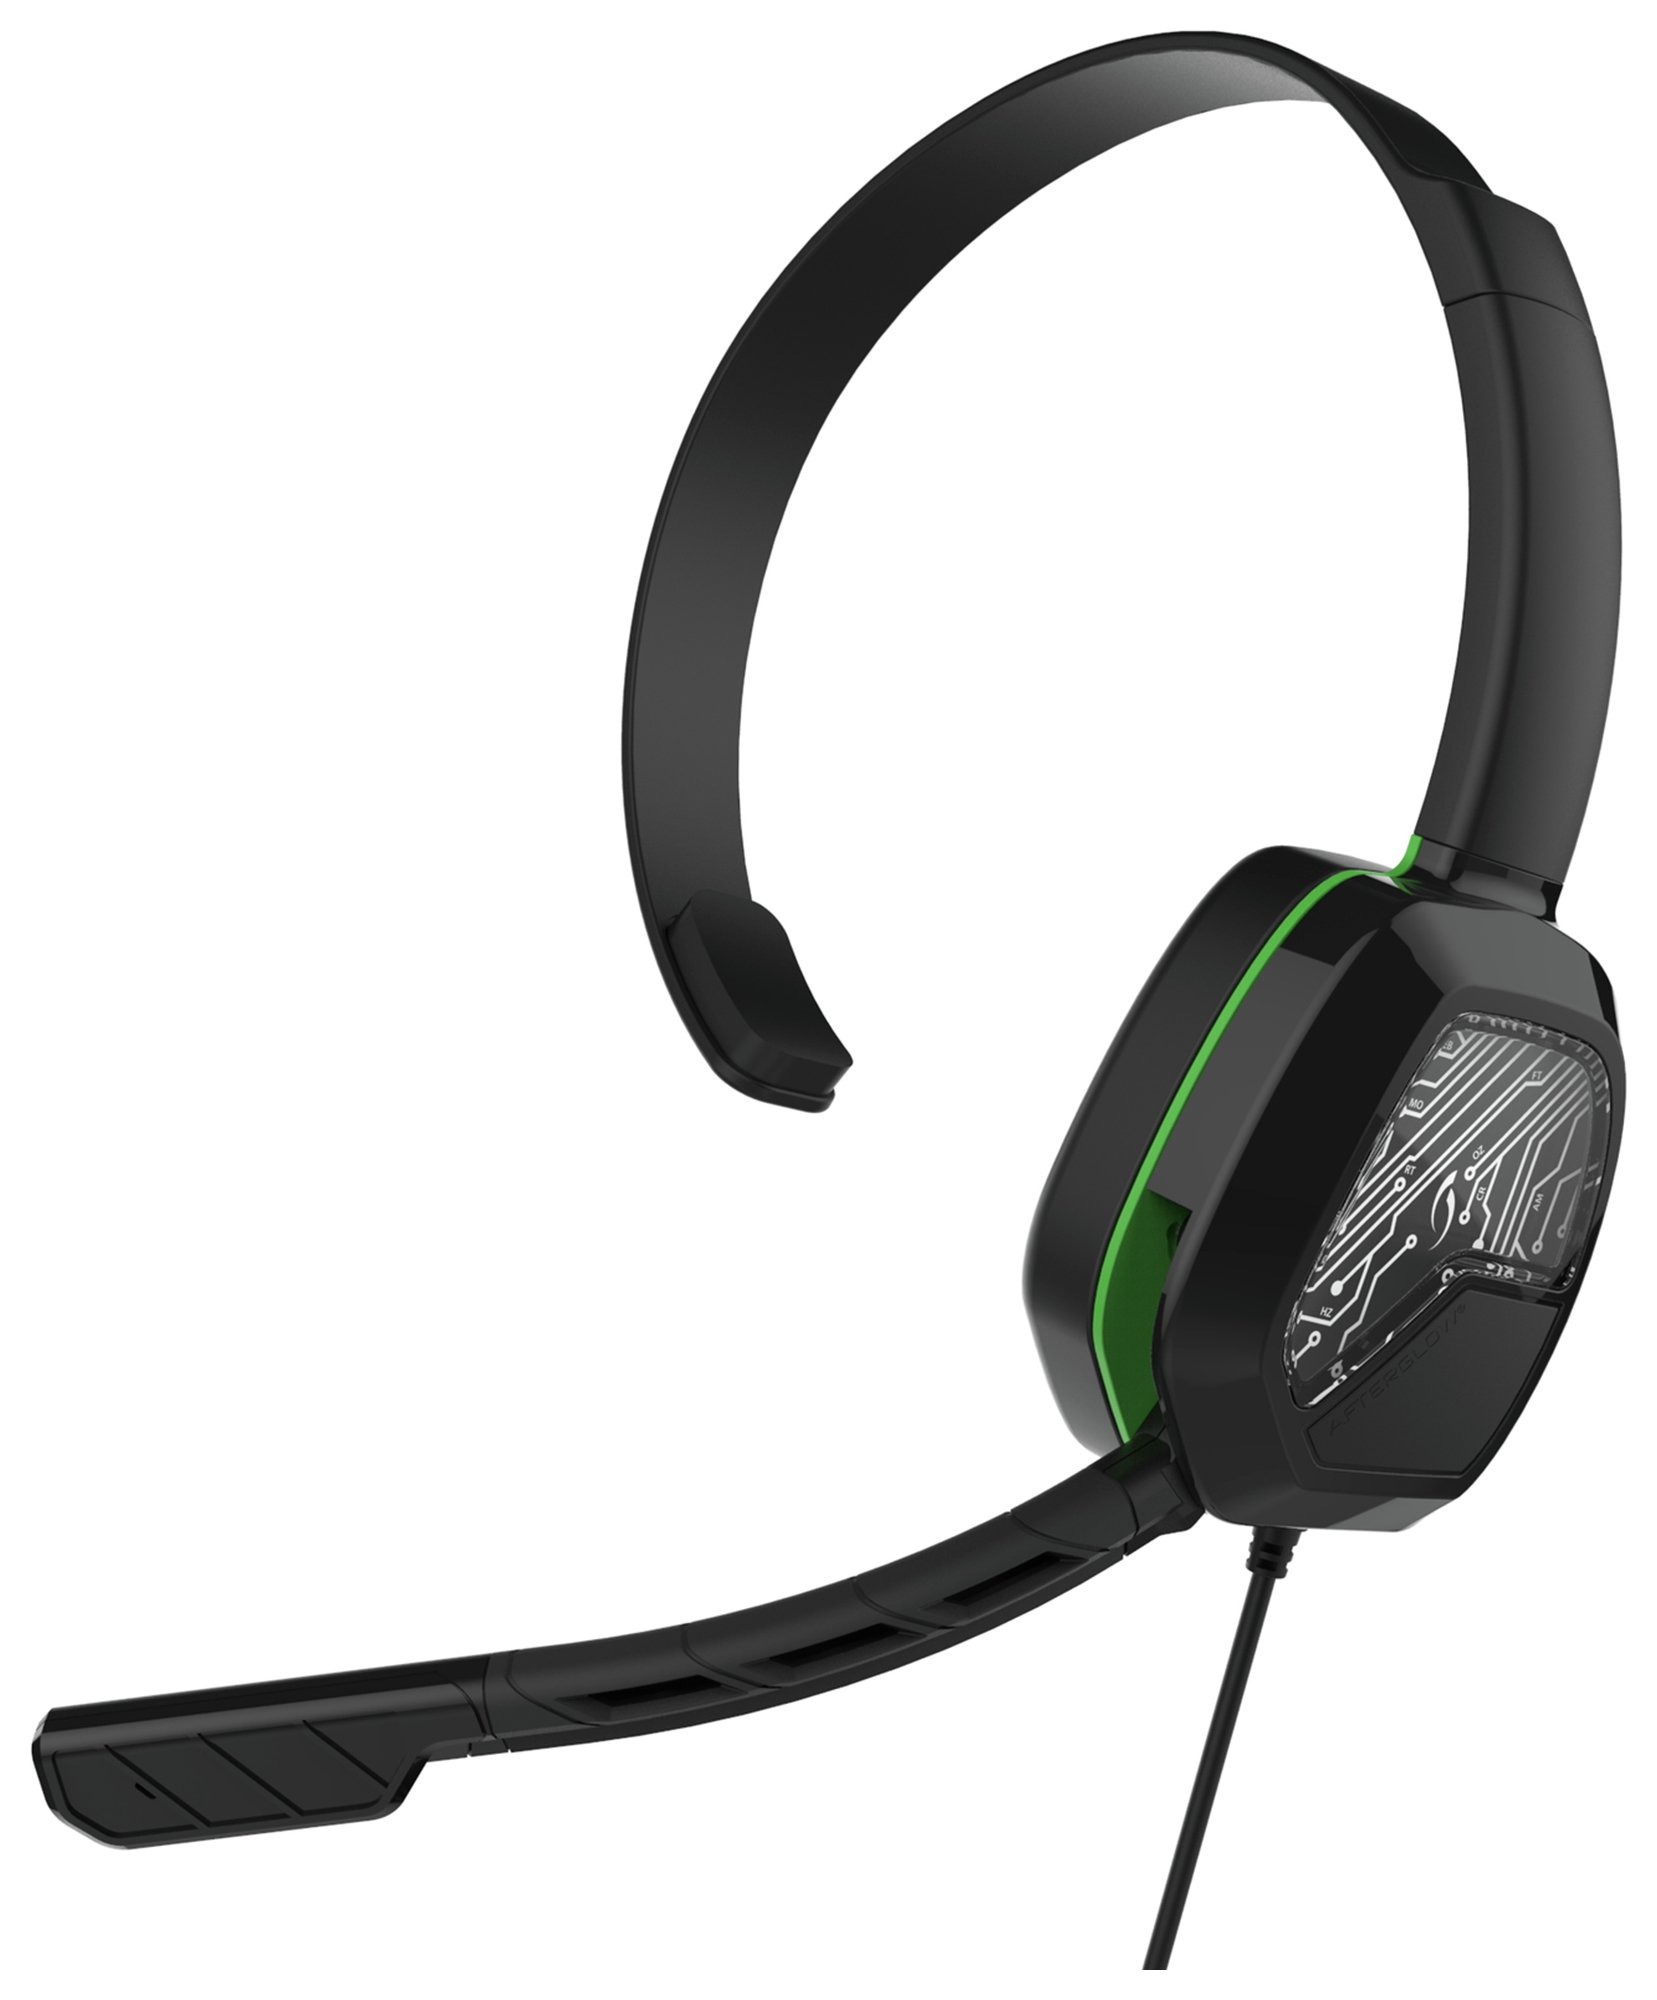 Image of Afterglow LVL 1 Wired Gaming Headset for Xbox One